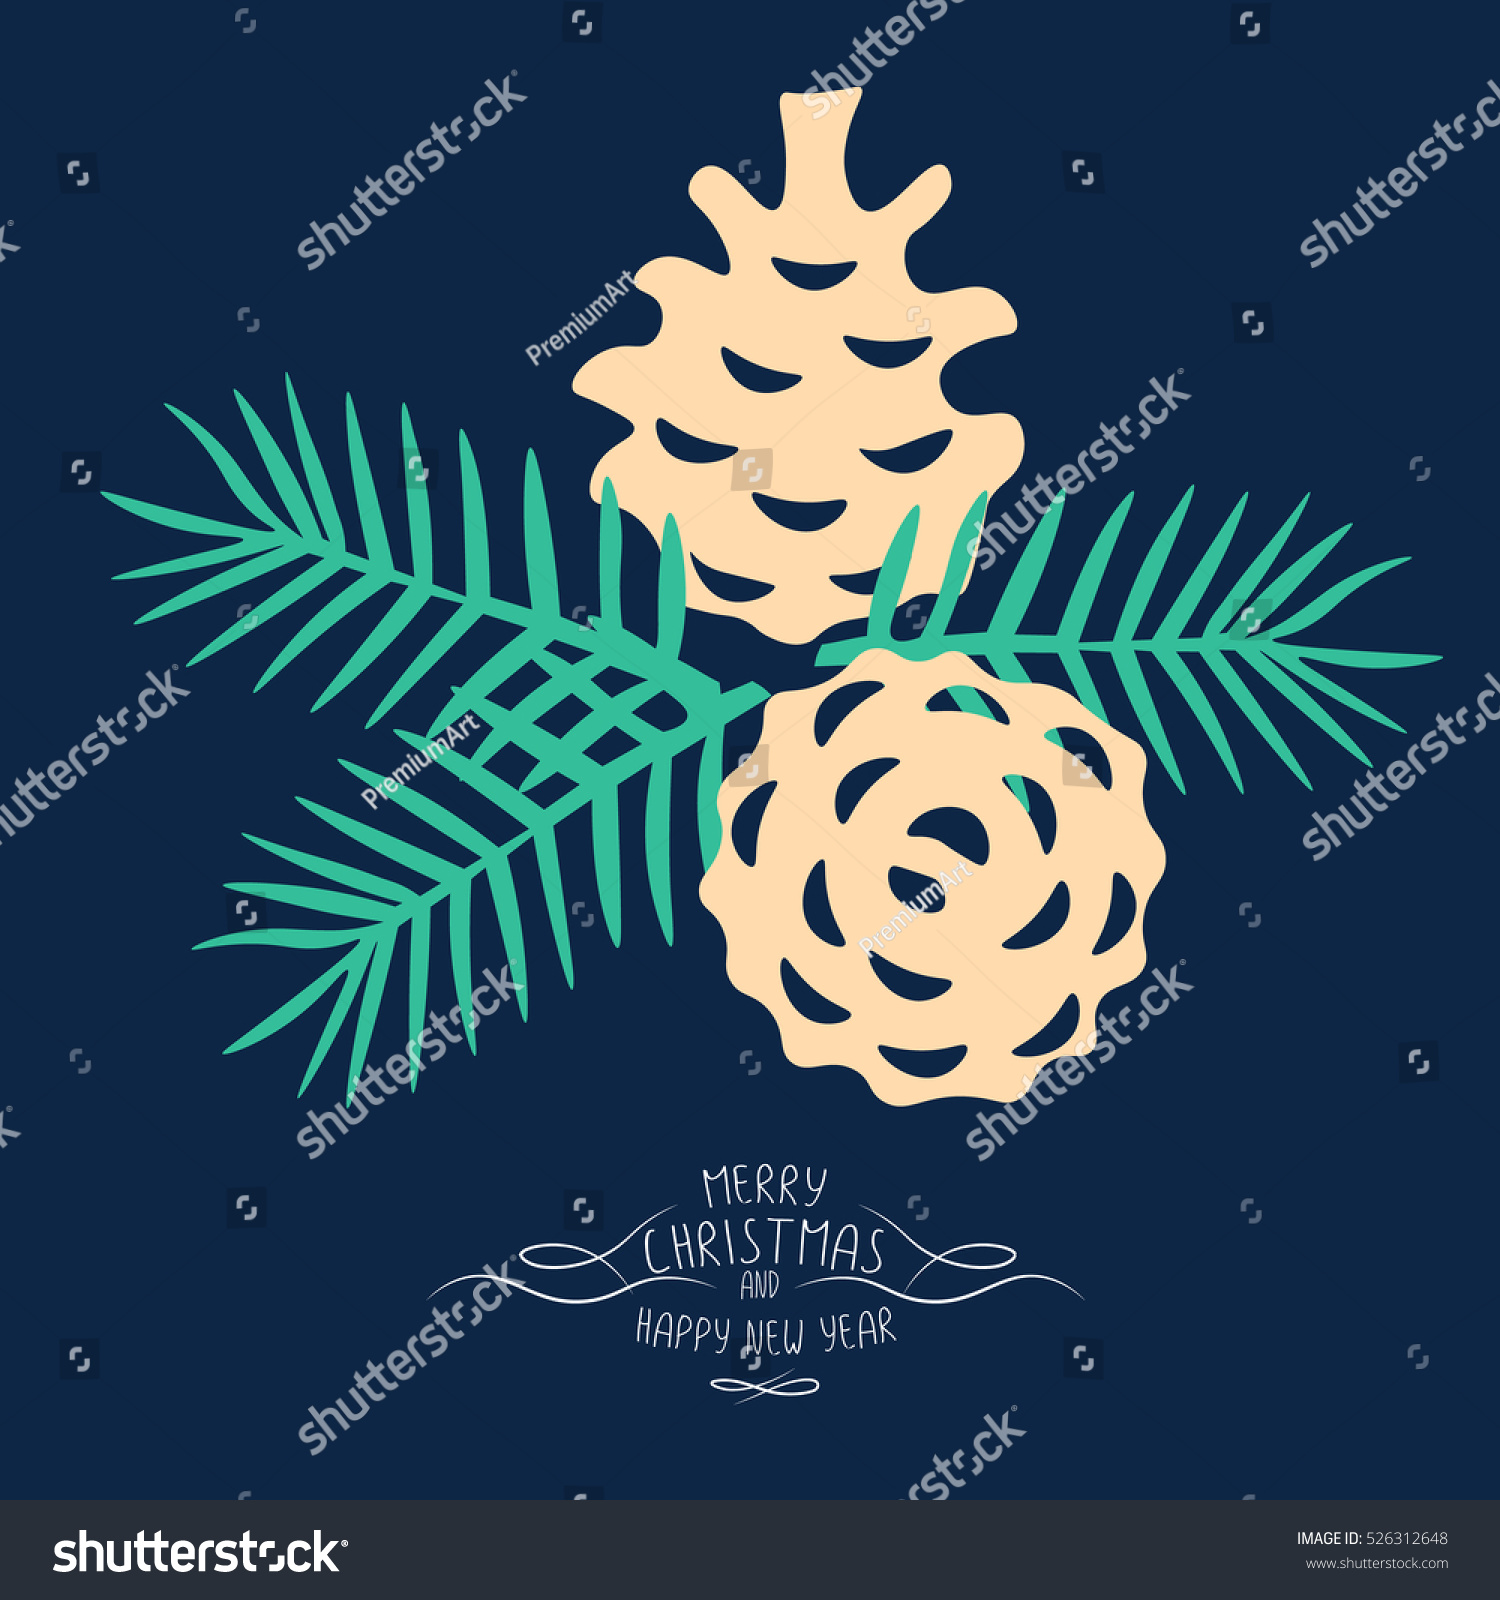 vintage merry christmas and happy new year background pine cones and spruce twigs stylish vector